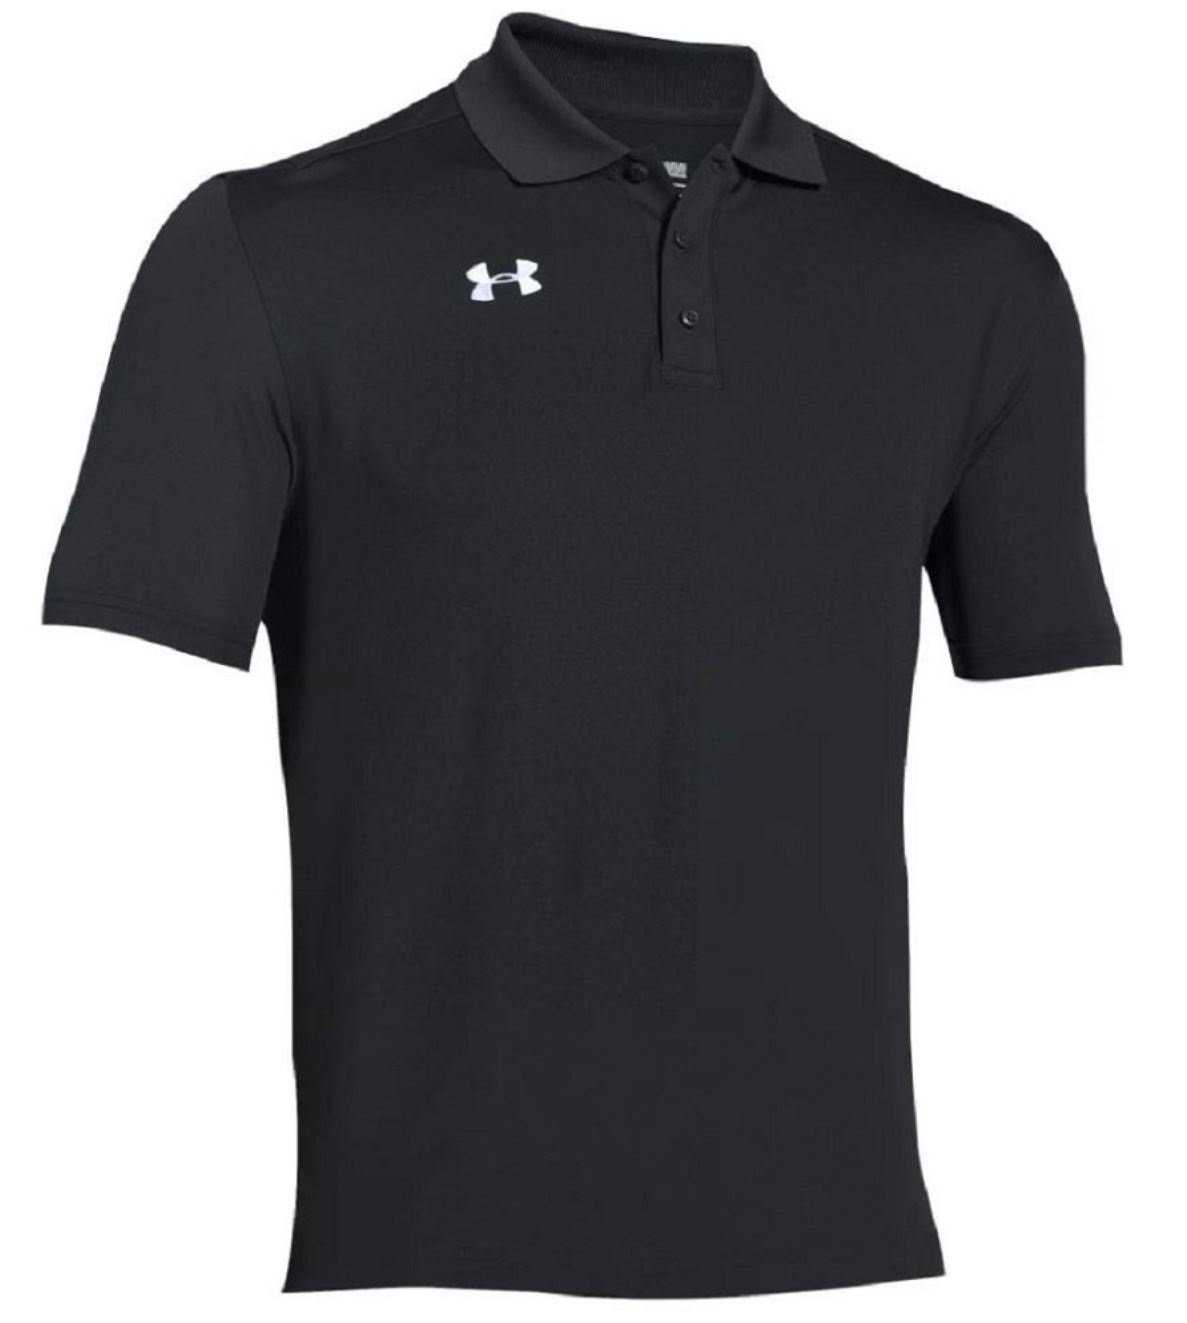 Under Armour Team Armour Men's Golf Polo (Black, Medium) by Under Armour (Image #1)